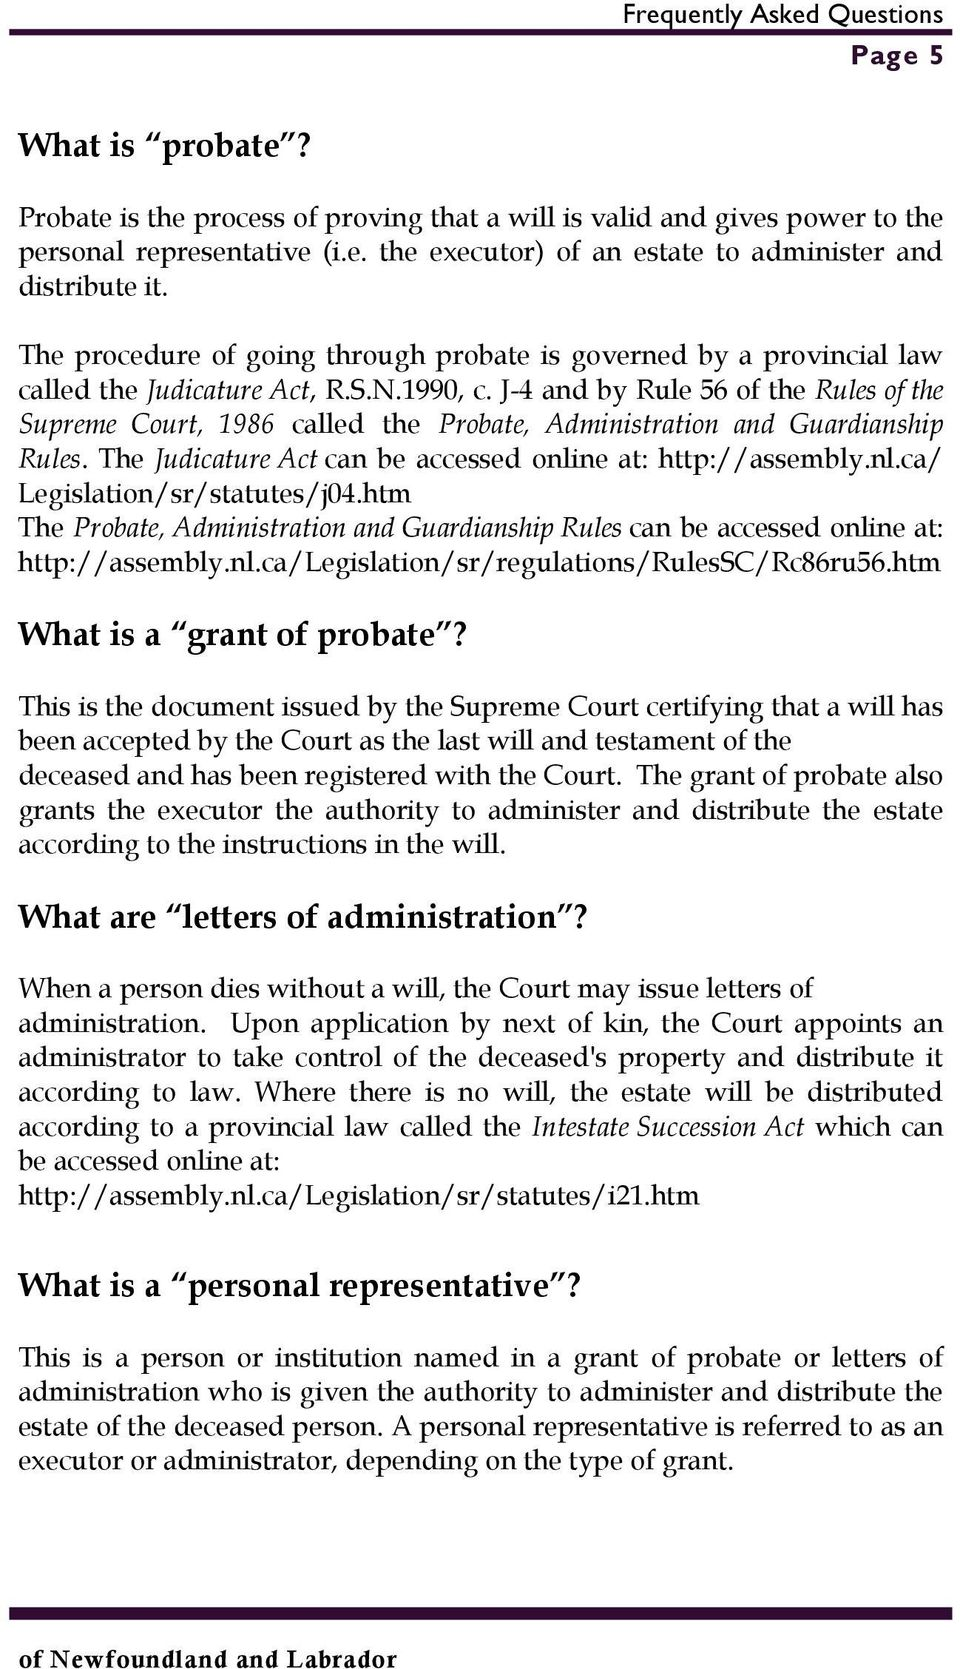 J-4 and by Rule 56 of the Rules of the Supreme Court, 1986 called the Probate, Administration and Guardianship Rules. The Judicature Act can be accessed online at: http://assembly.nl.ca/ Legislation/sr/statutes/j04.